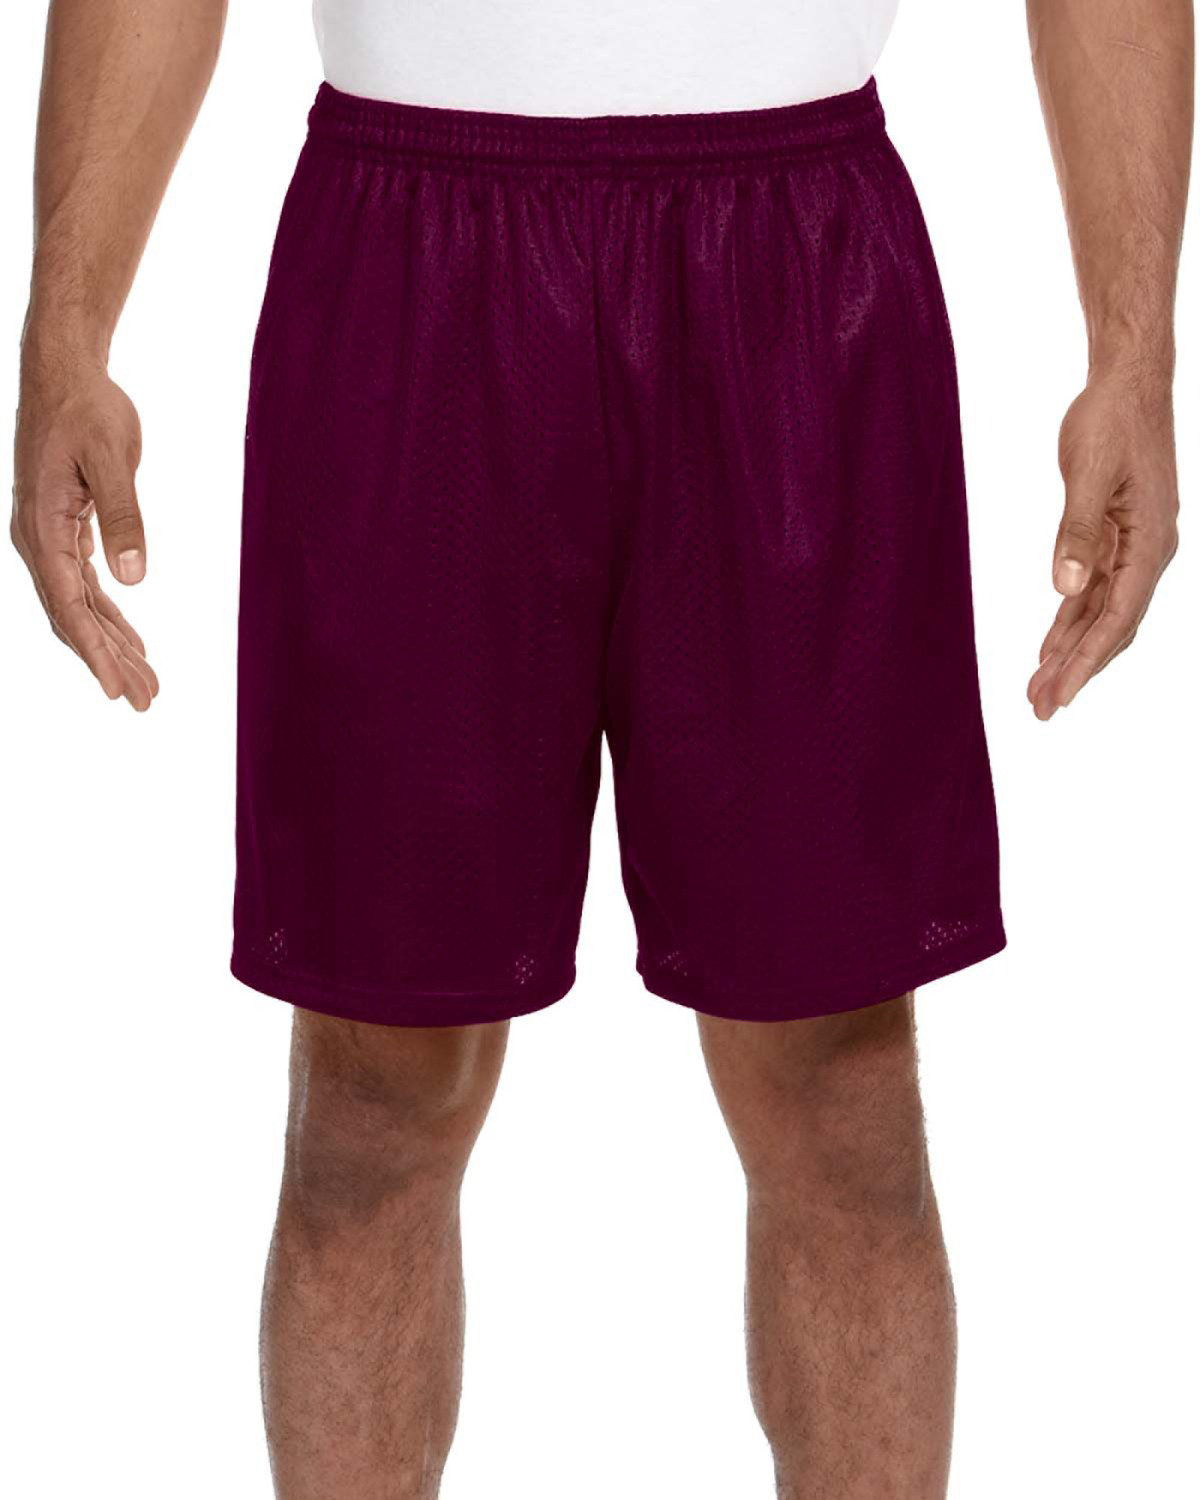 A4 Adult Seven Inch Inseam Mesh Short MAROON